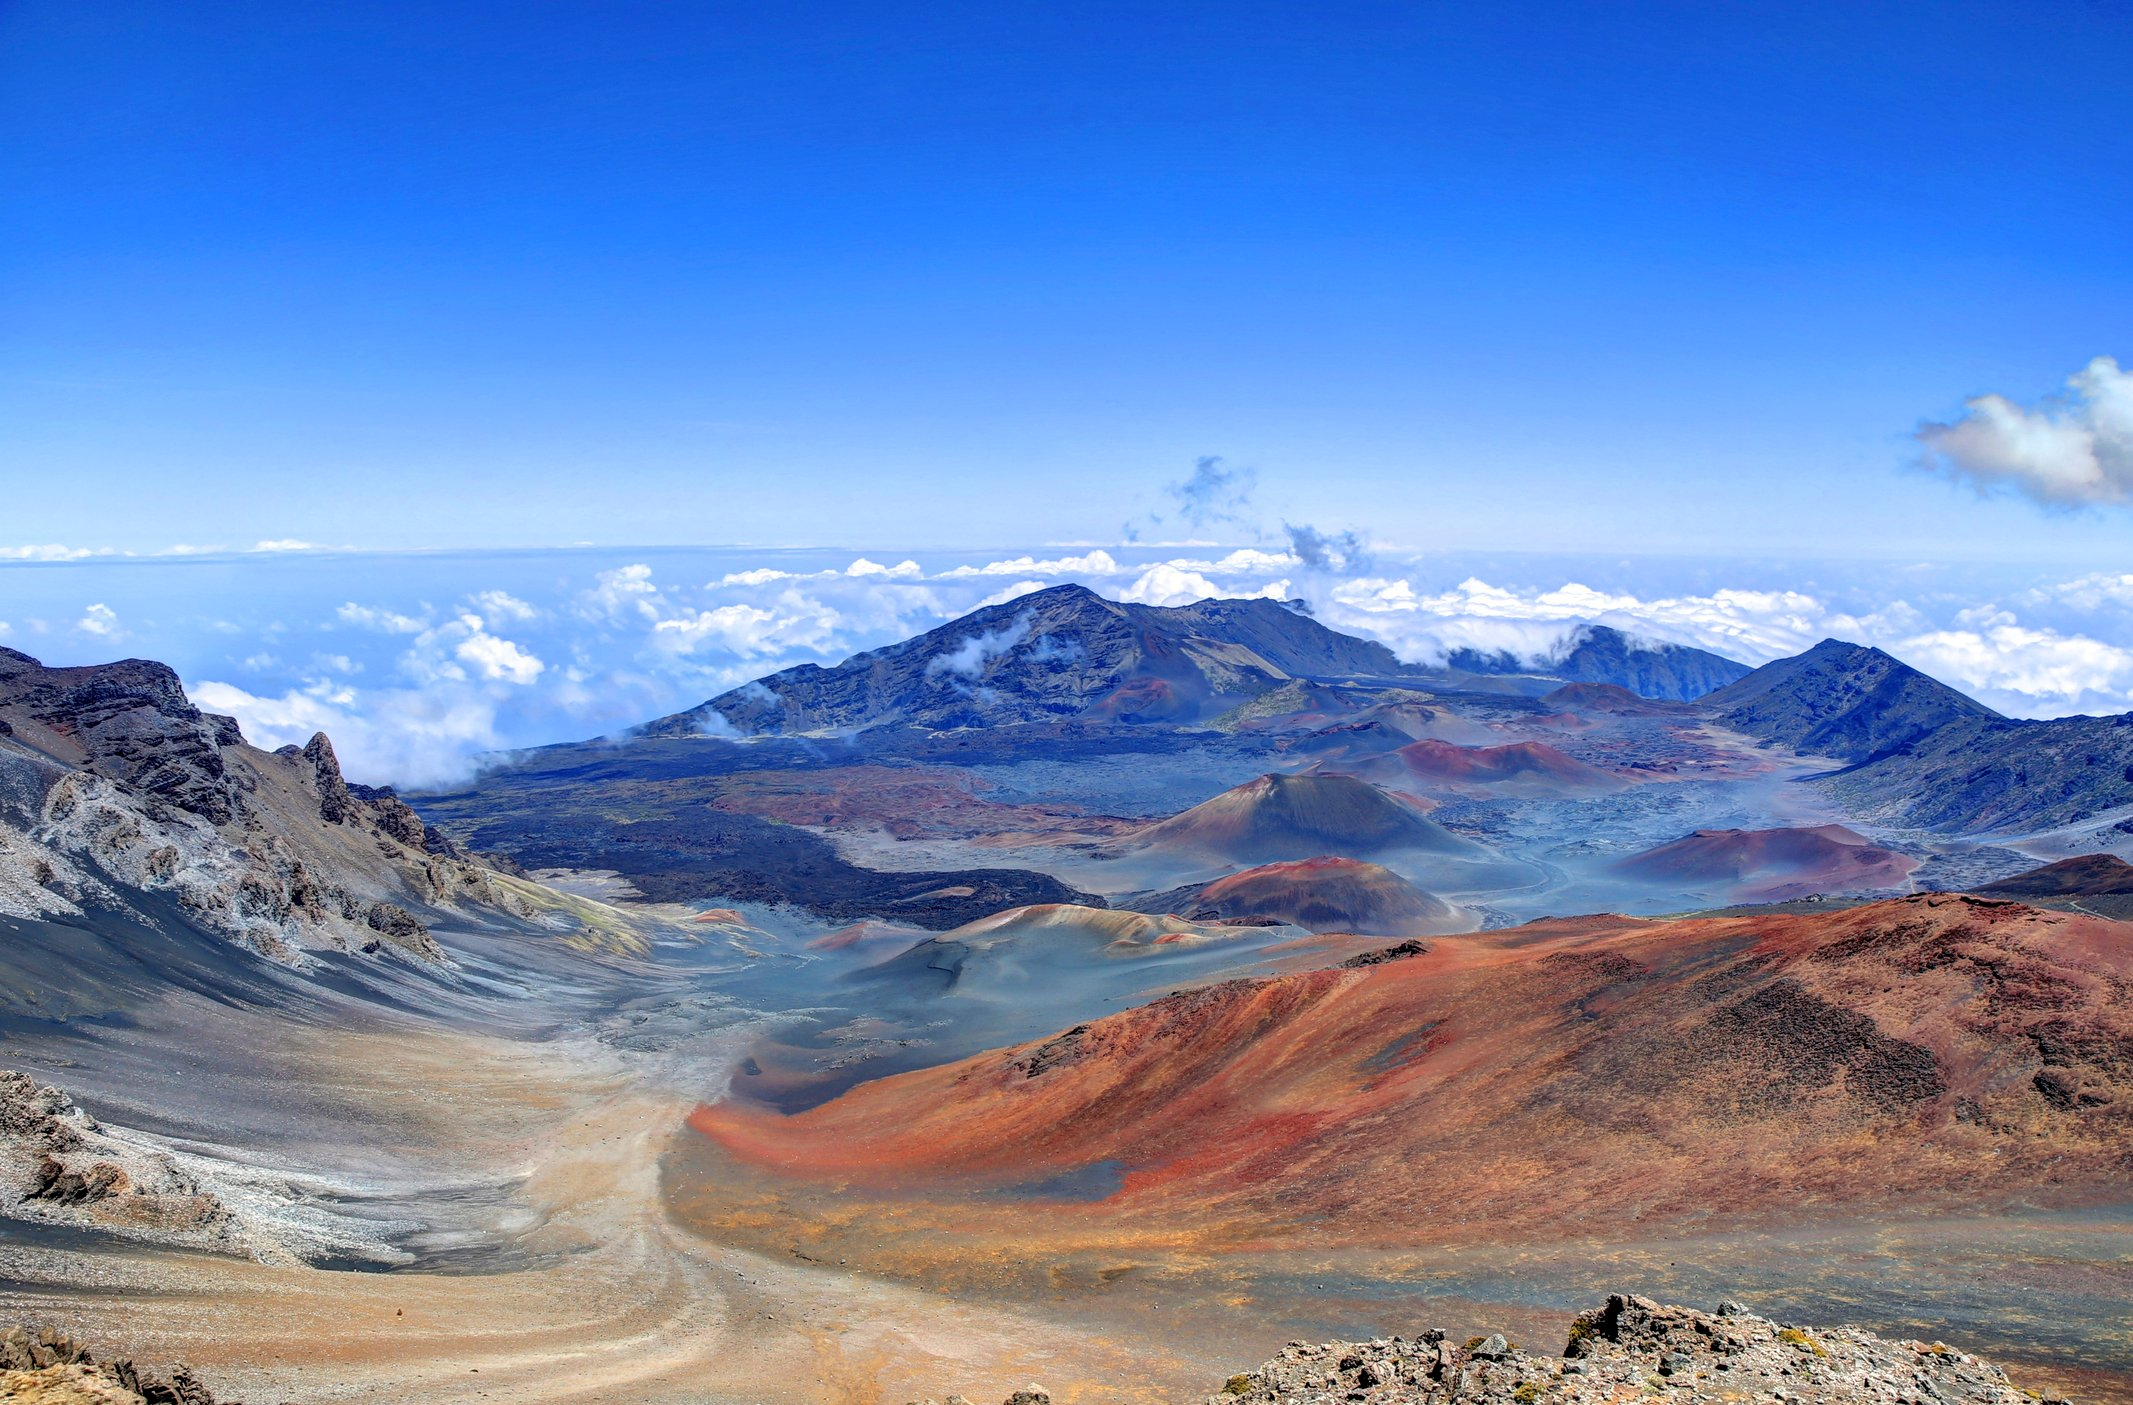 A look at the Haleakala volcano crater from above.